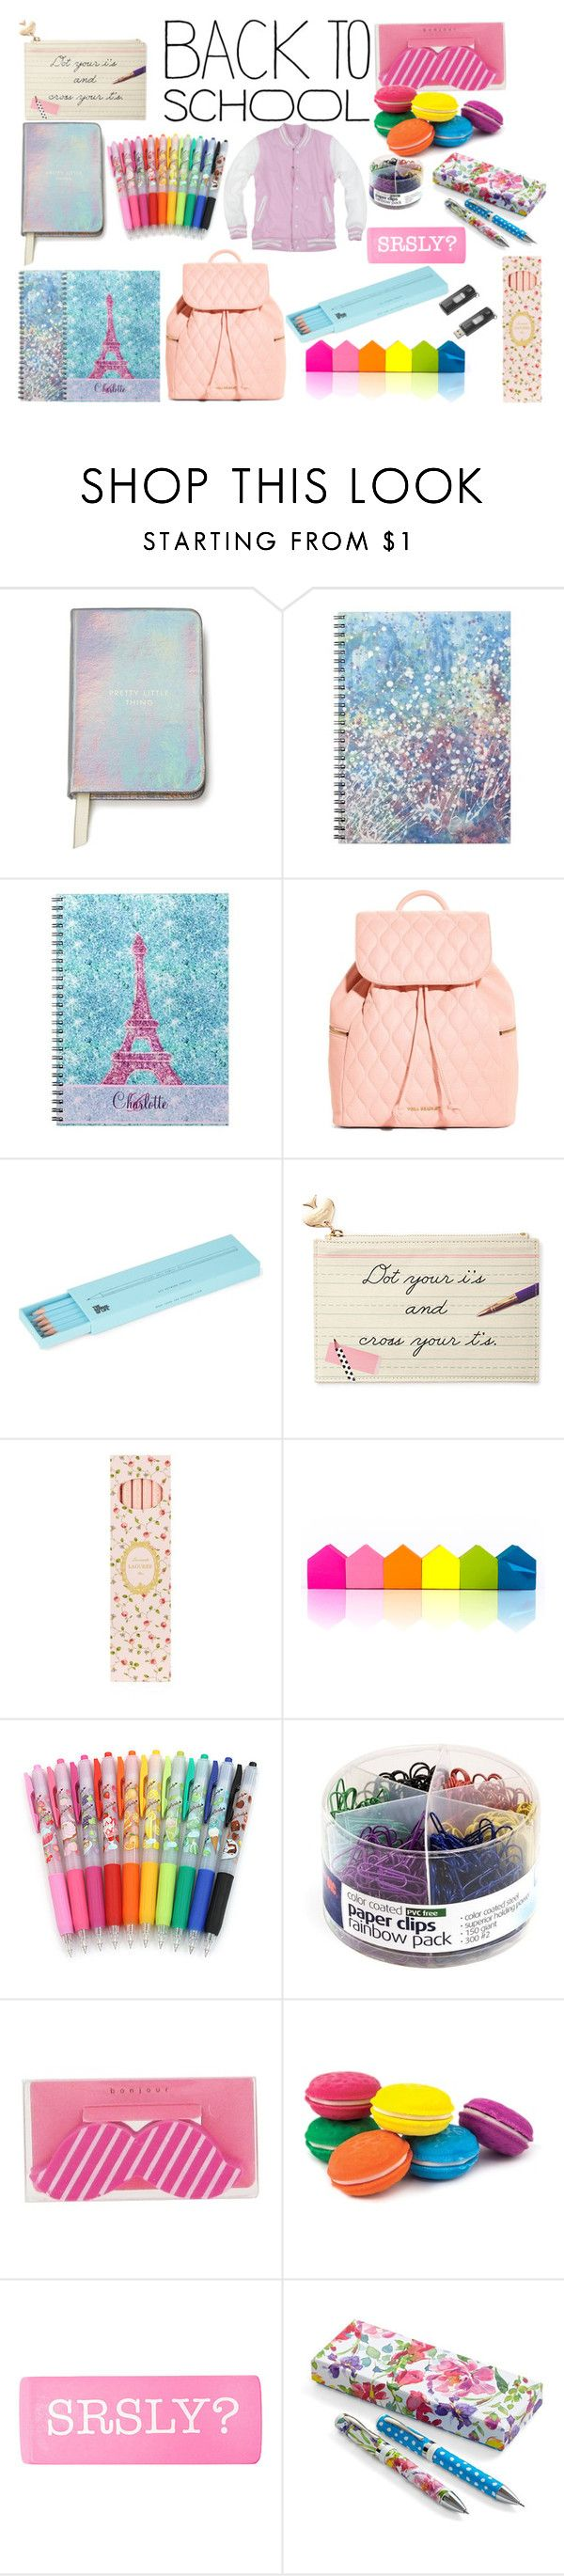 """Back to school supplies"" by zoe-keredy ❤ liked on Polyvore featuring interior, interiors, interior design, home, home decor, interior decorating, Kate Spade, Vera Bradley, Polite and Ladurée"